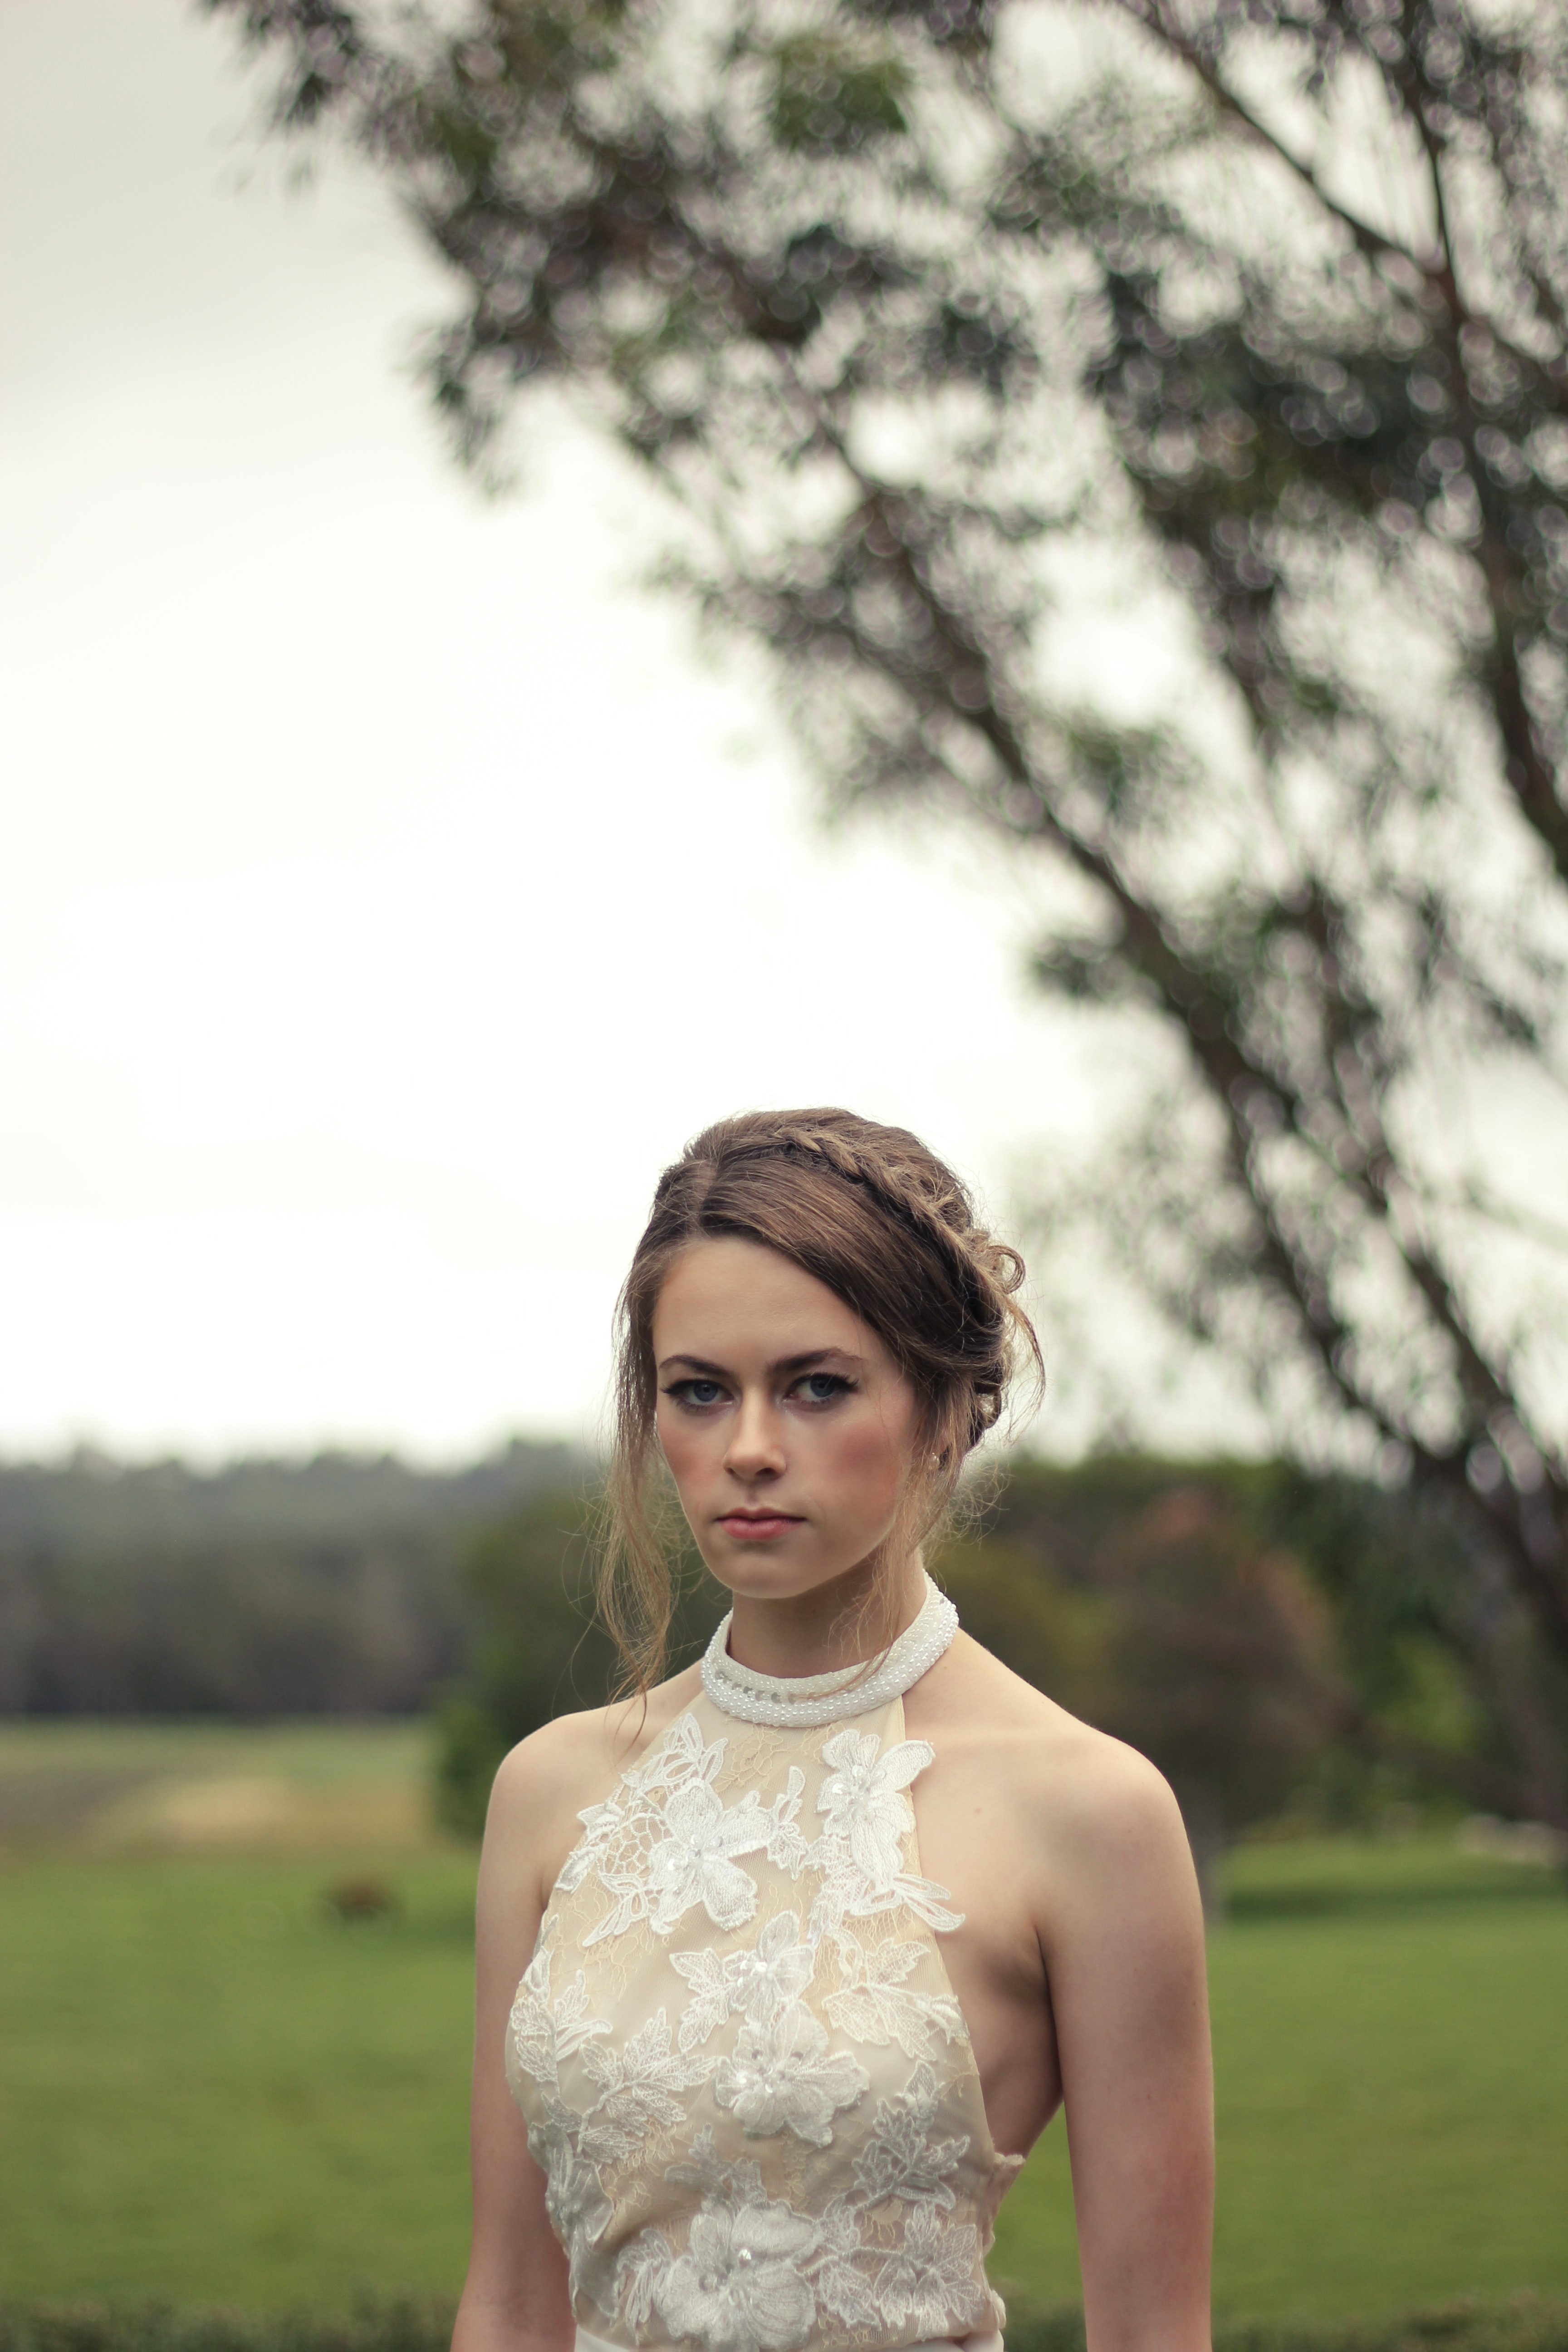 Bride with a braided updo and lace wedding gown outside